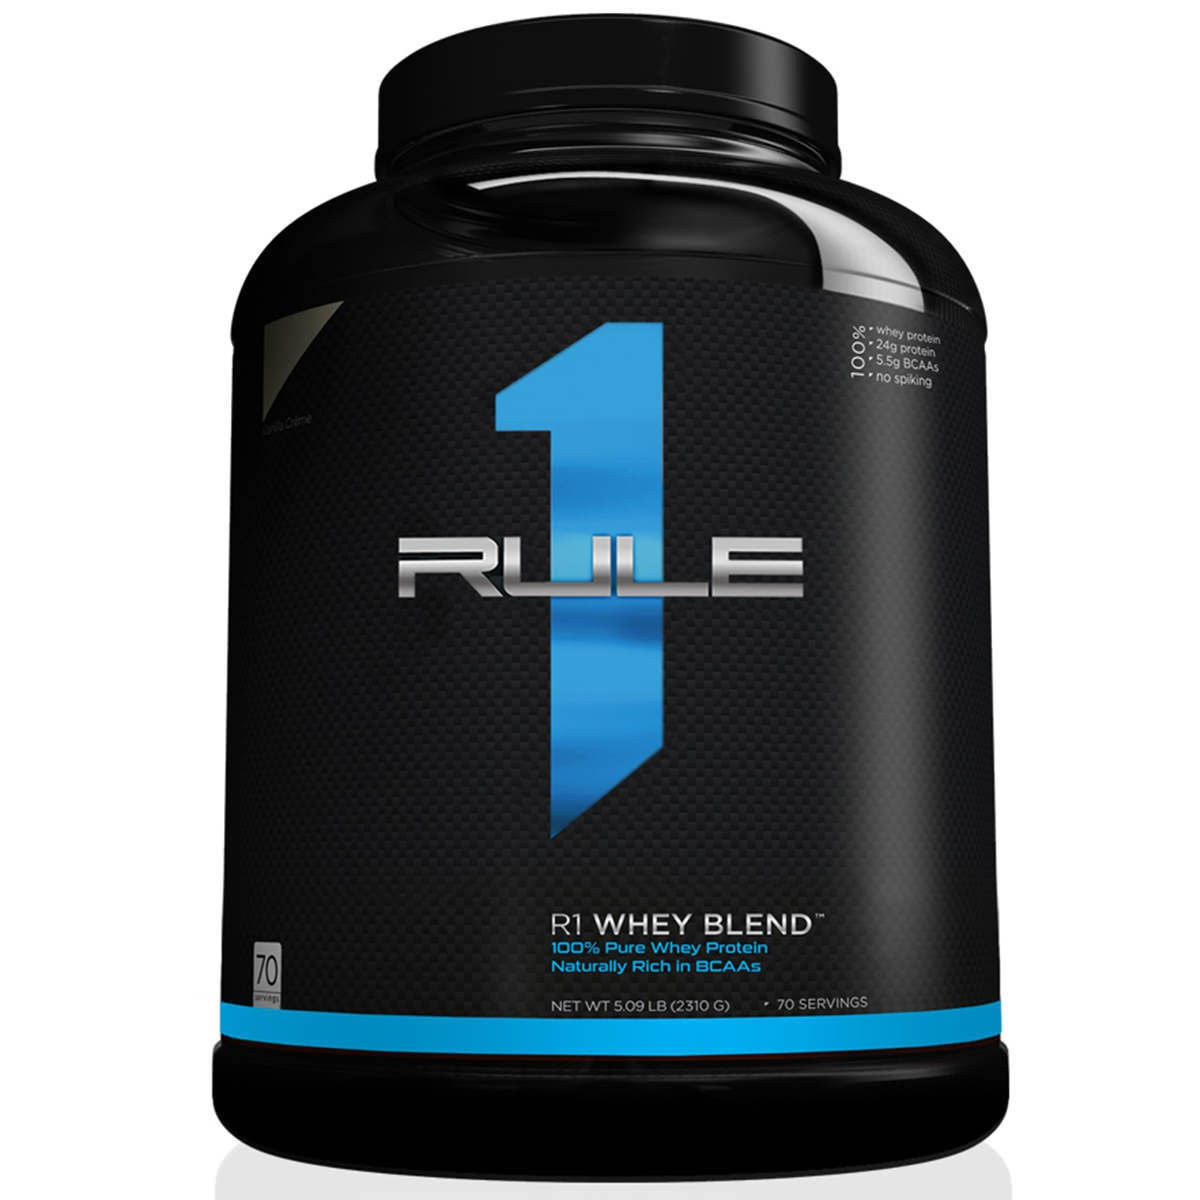 Rule 1 R1 Whey Blend - 2lbs Chocolate Peanut Butter